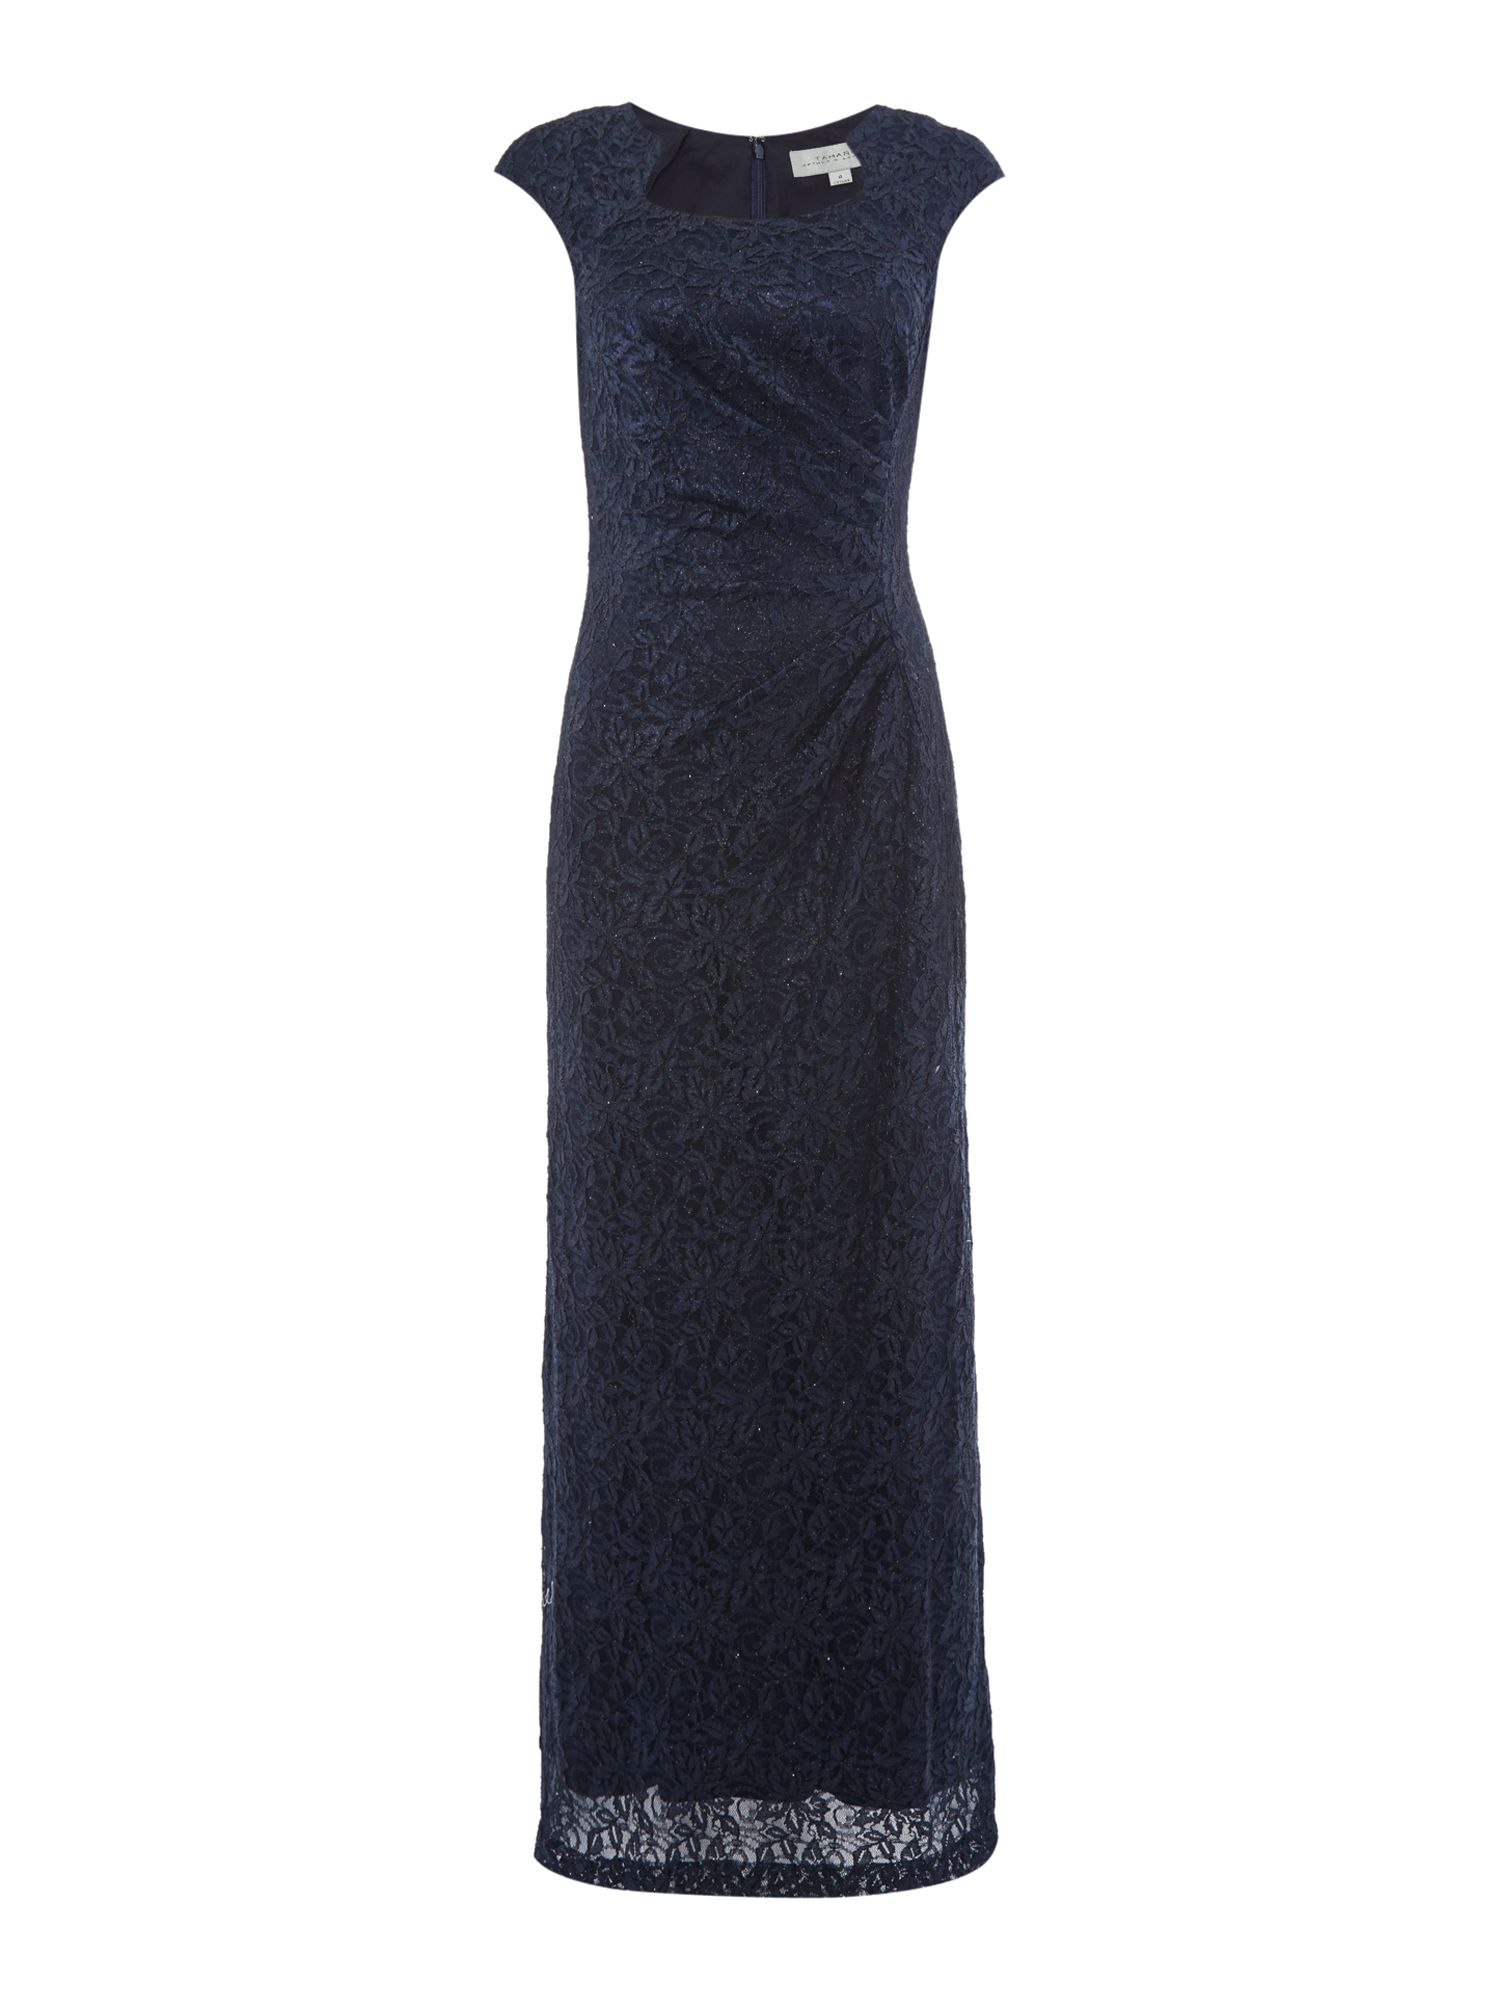 Tahari ASL Sequin Lace Cap Sleeve Gown, Blue